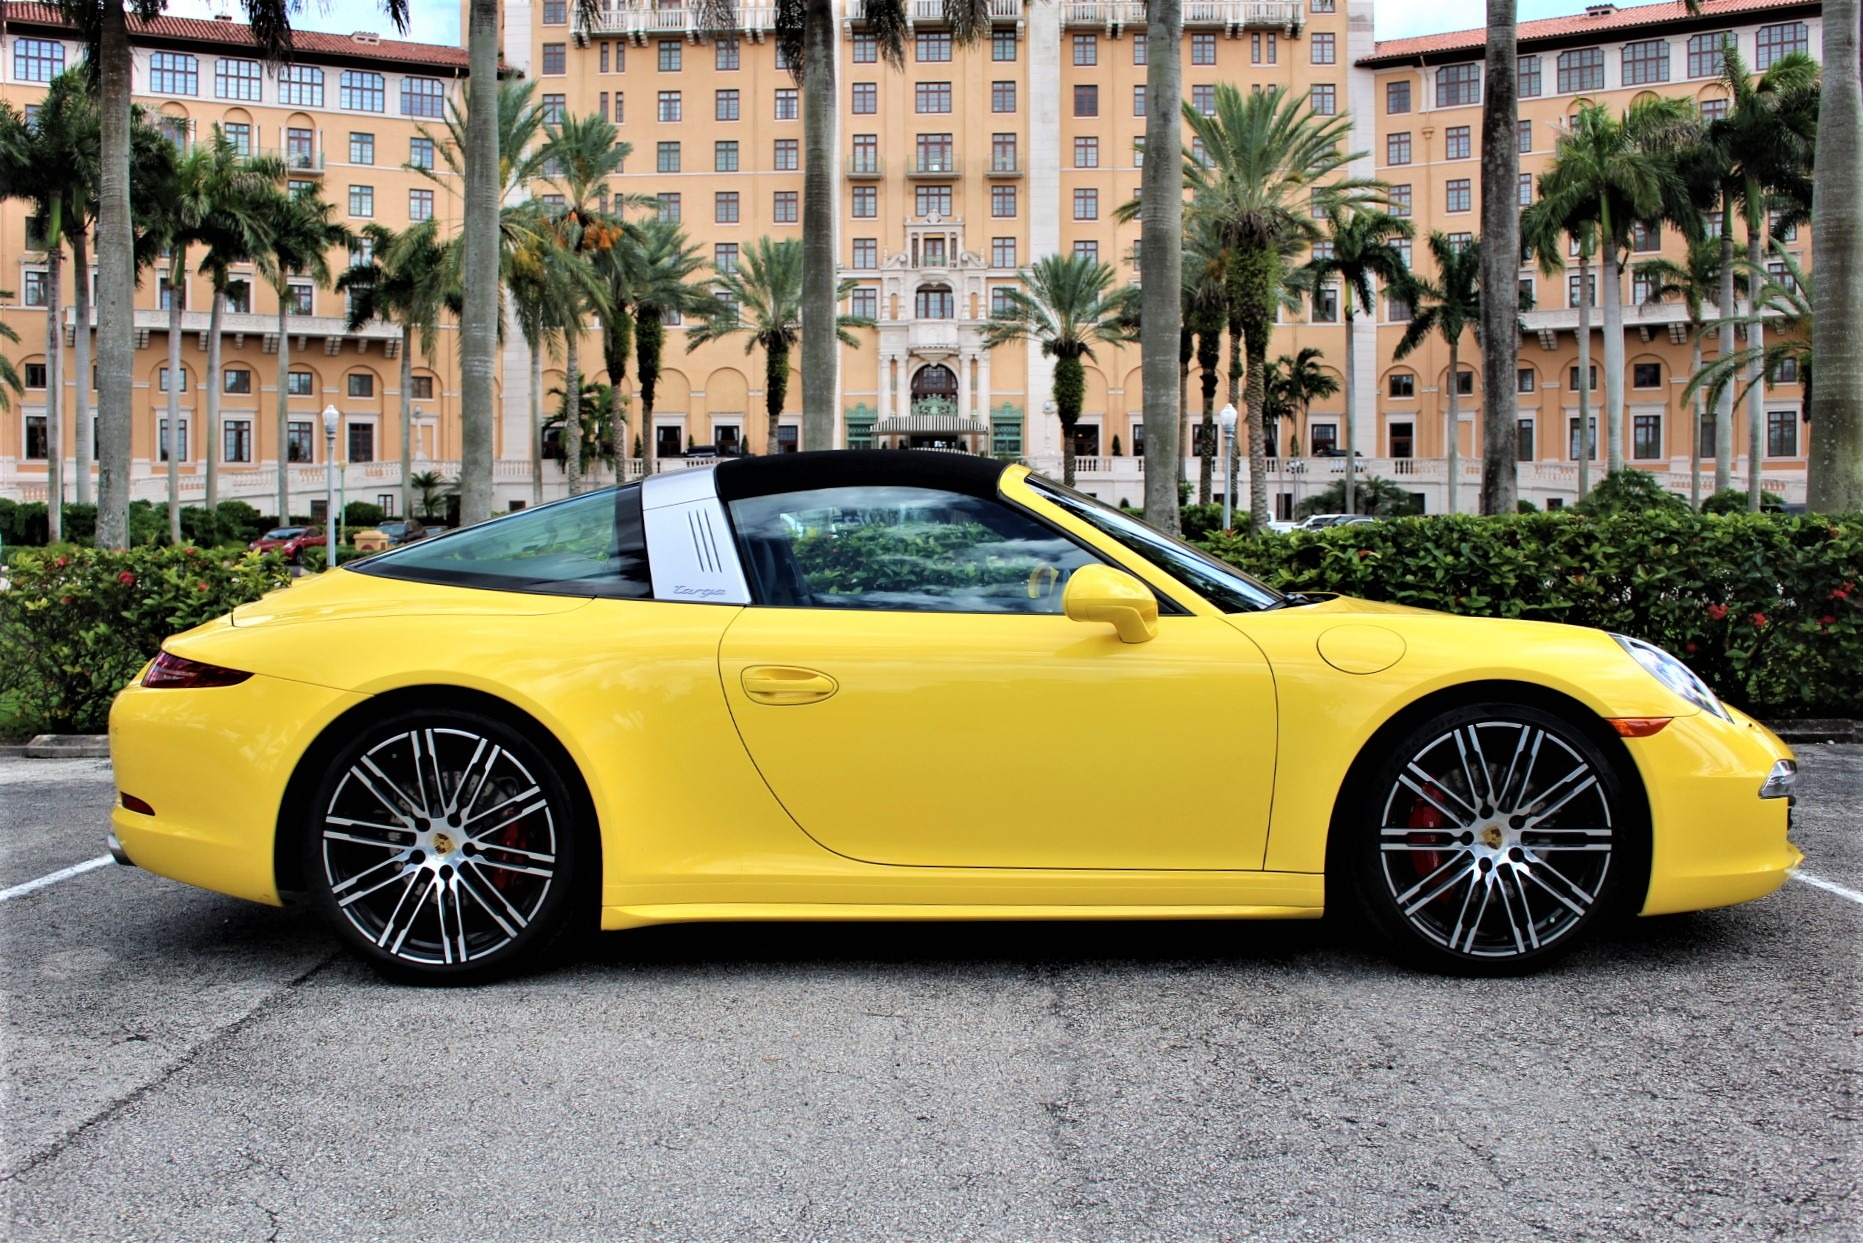 Used 2015 Porsche 911 Targa 4S Exclusive Edition for sale $122,850 at The Gables Sports Cars in Miami FL 33146 4